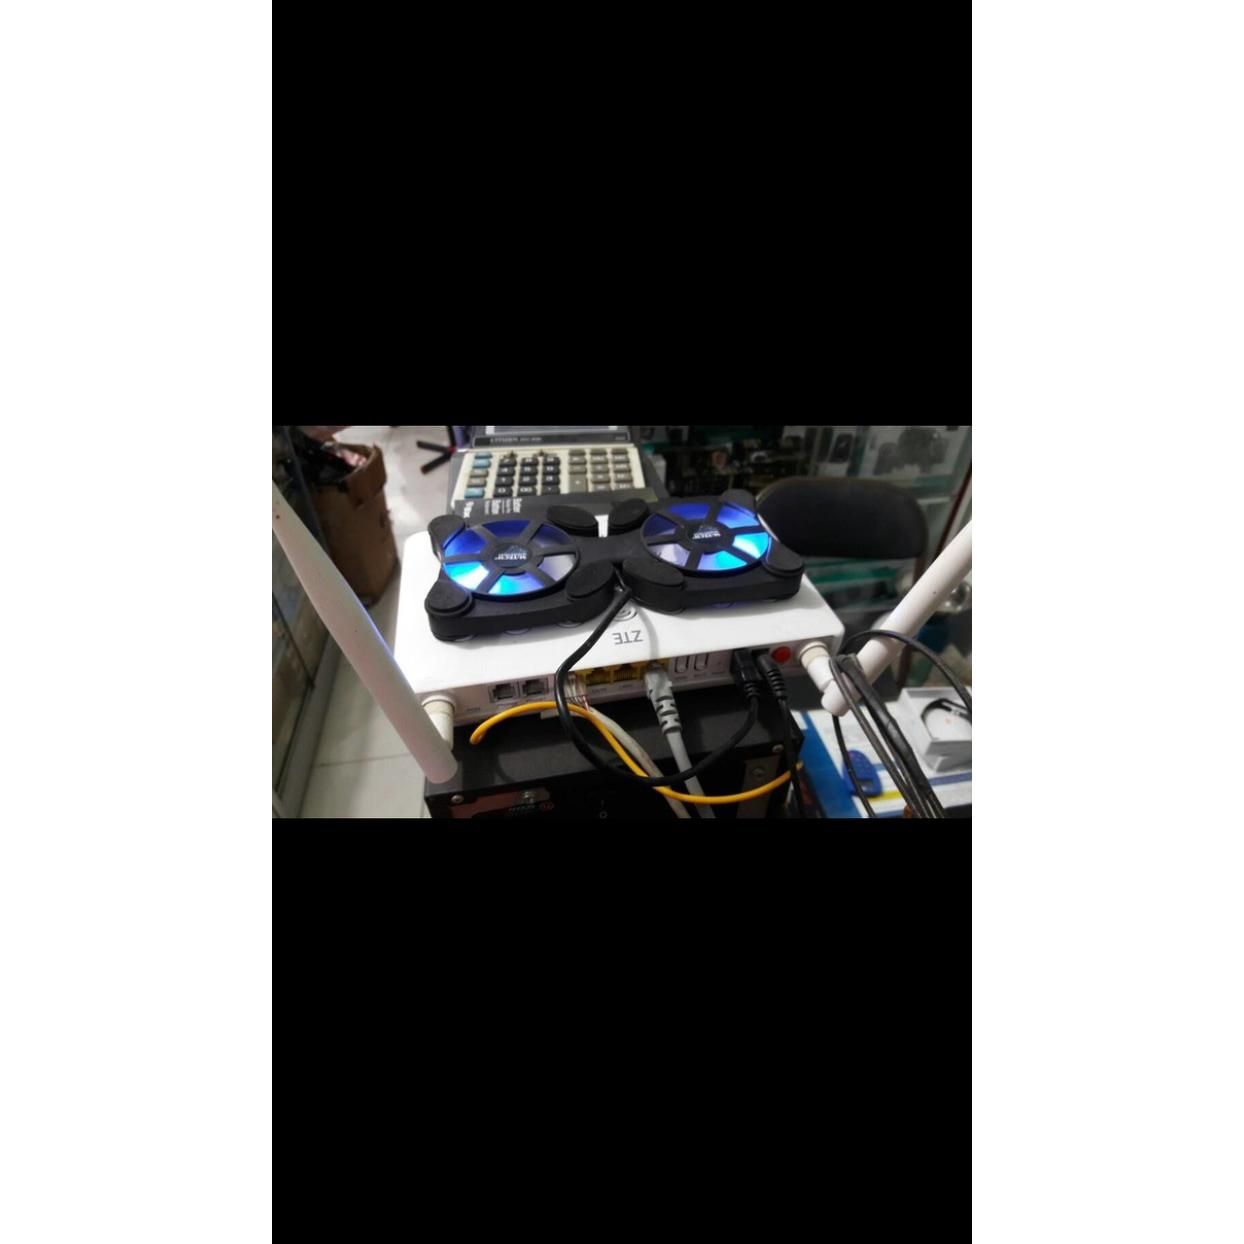 M Tech Cooling Pad Fan Kipas Pc Laptop Netbook Daftar Harga Kepiting Mt919 Crab Coolingpad Lipat Flip Turun Mt 919 Angin Komputer